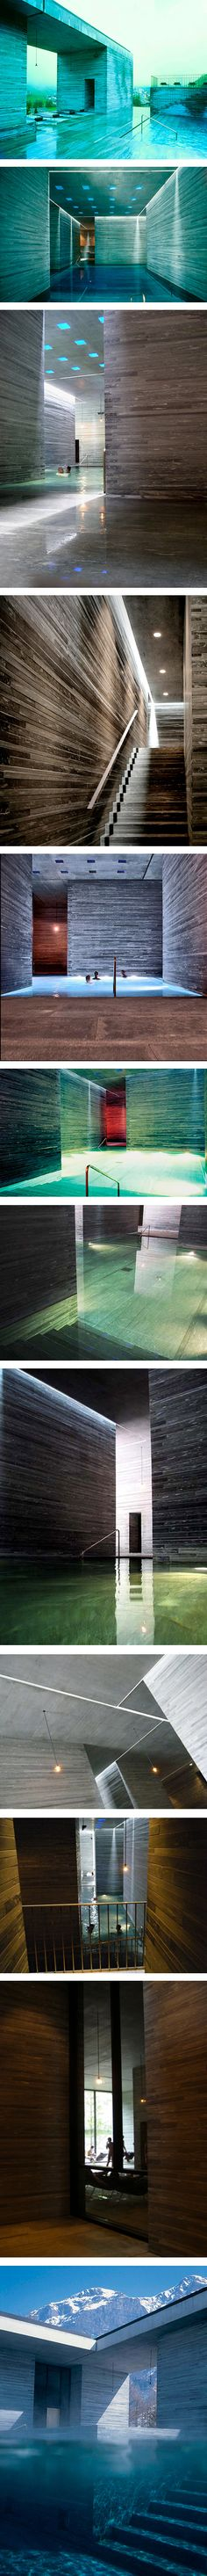 Hot Springs, Vals [Switzerland] - Peter Zumthor.